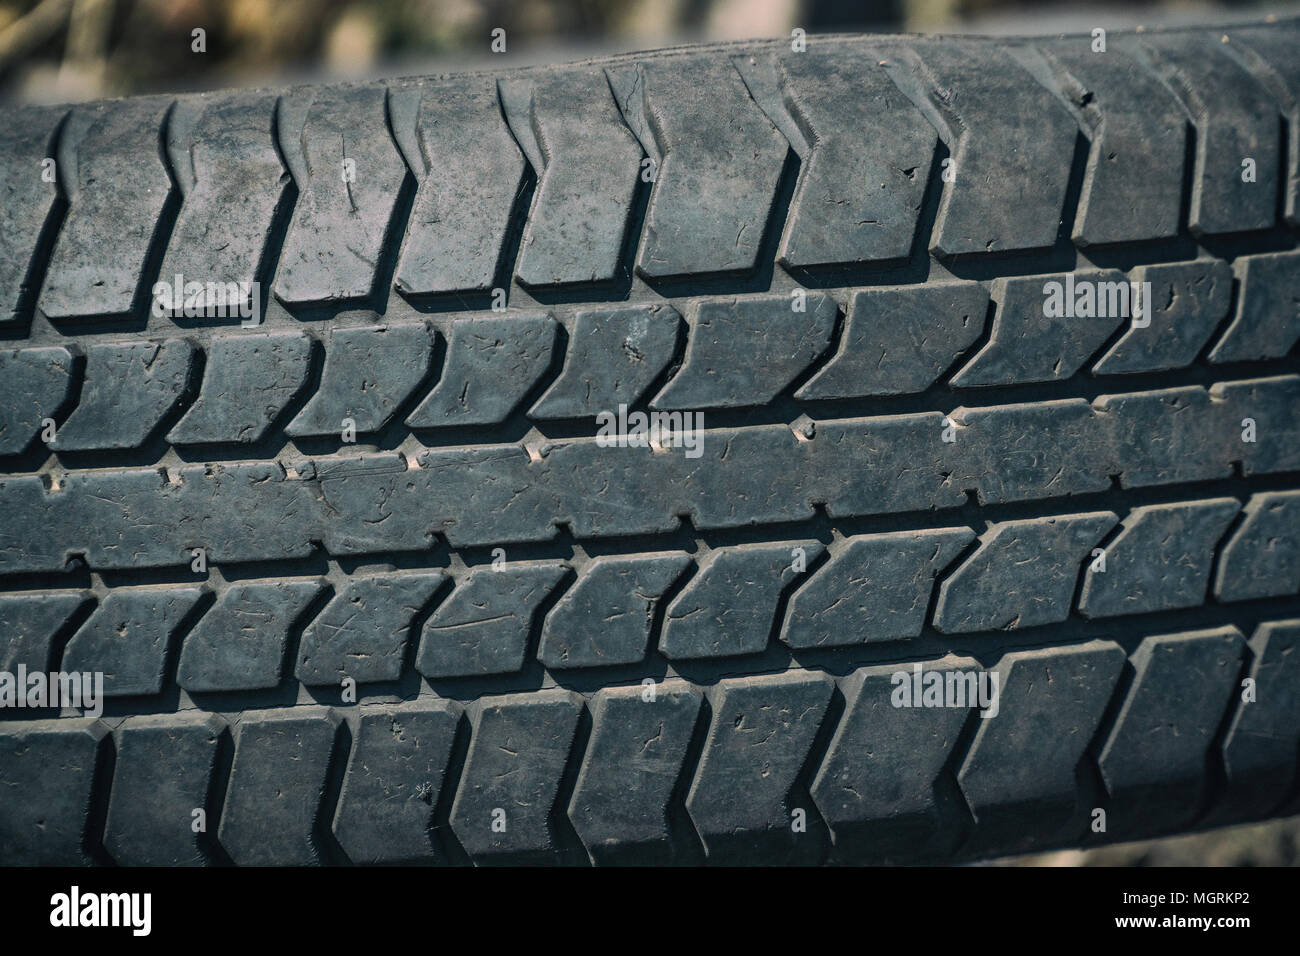 Old worn tire with a worn tread - Stock Image